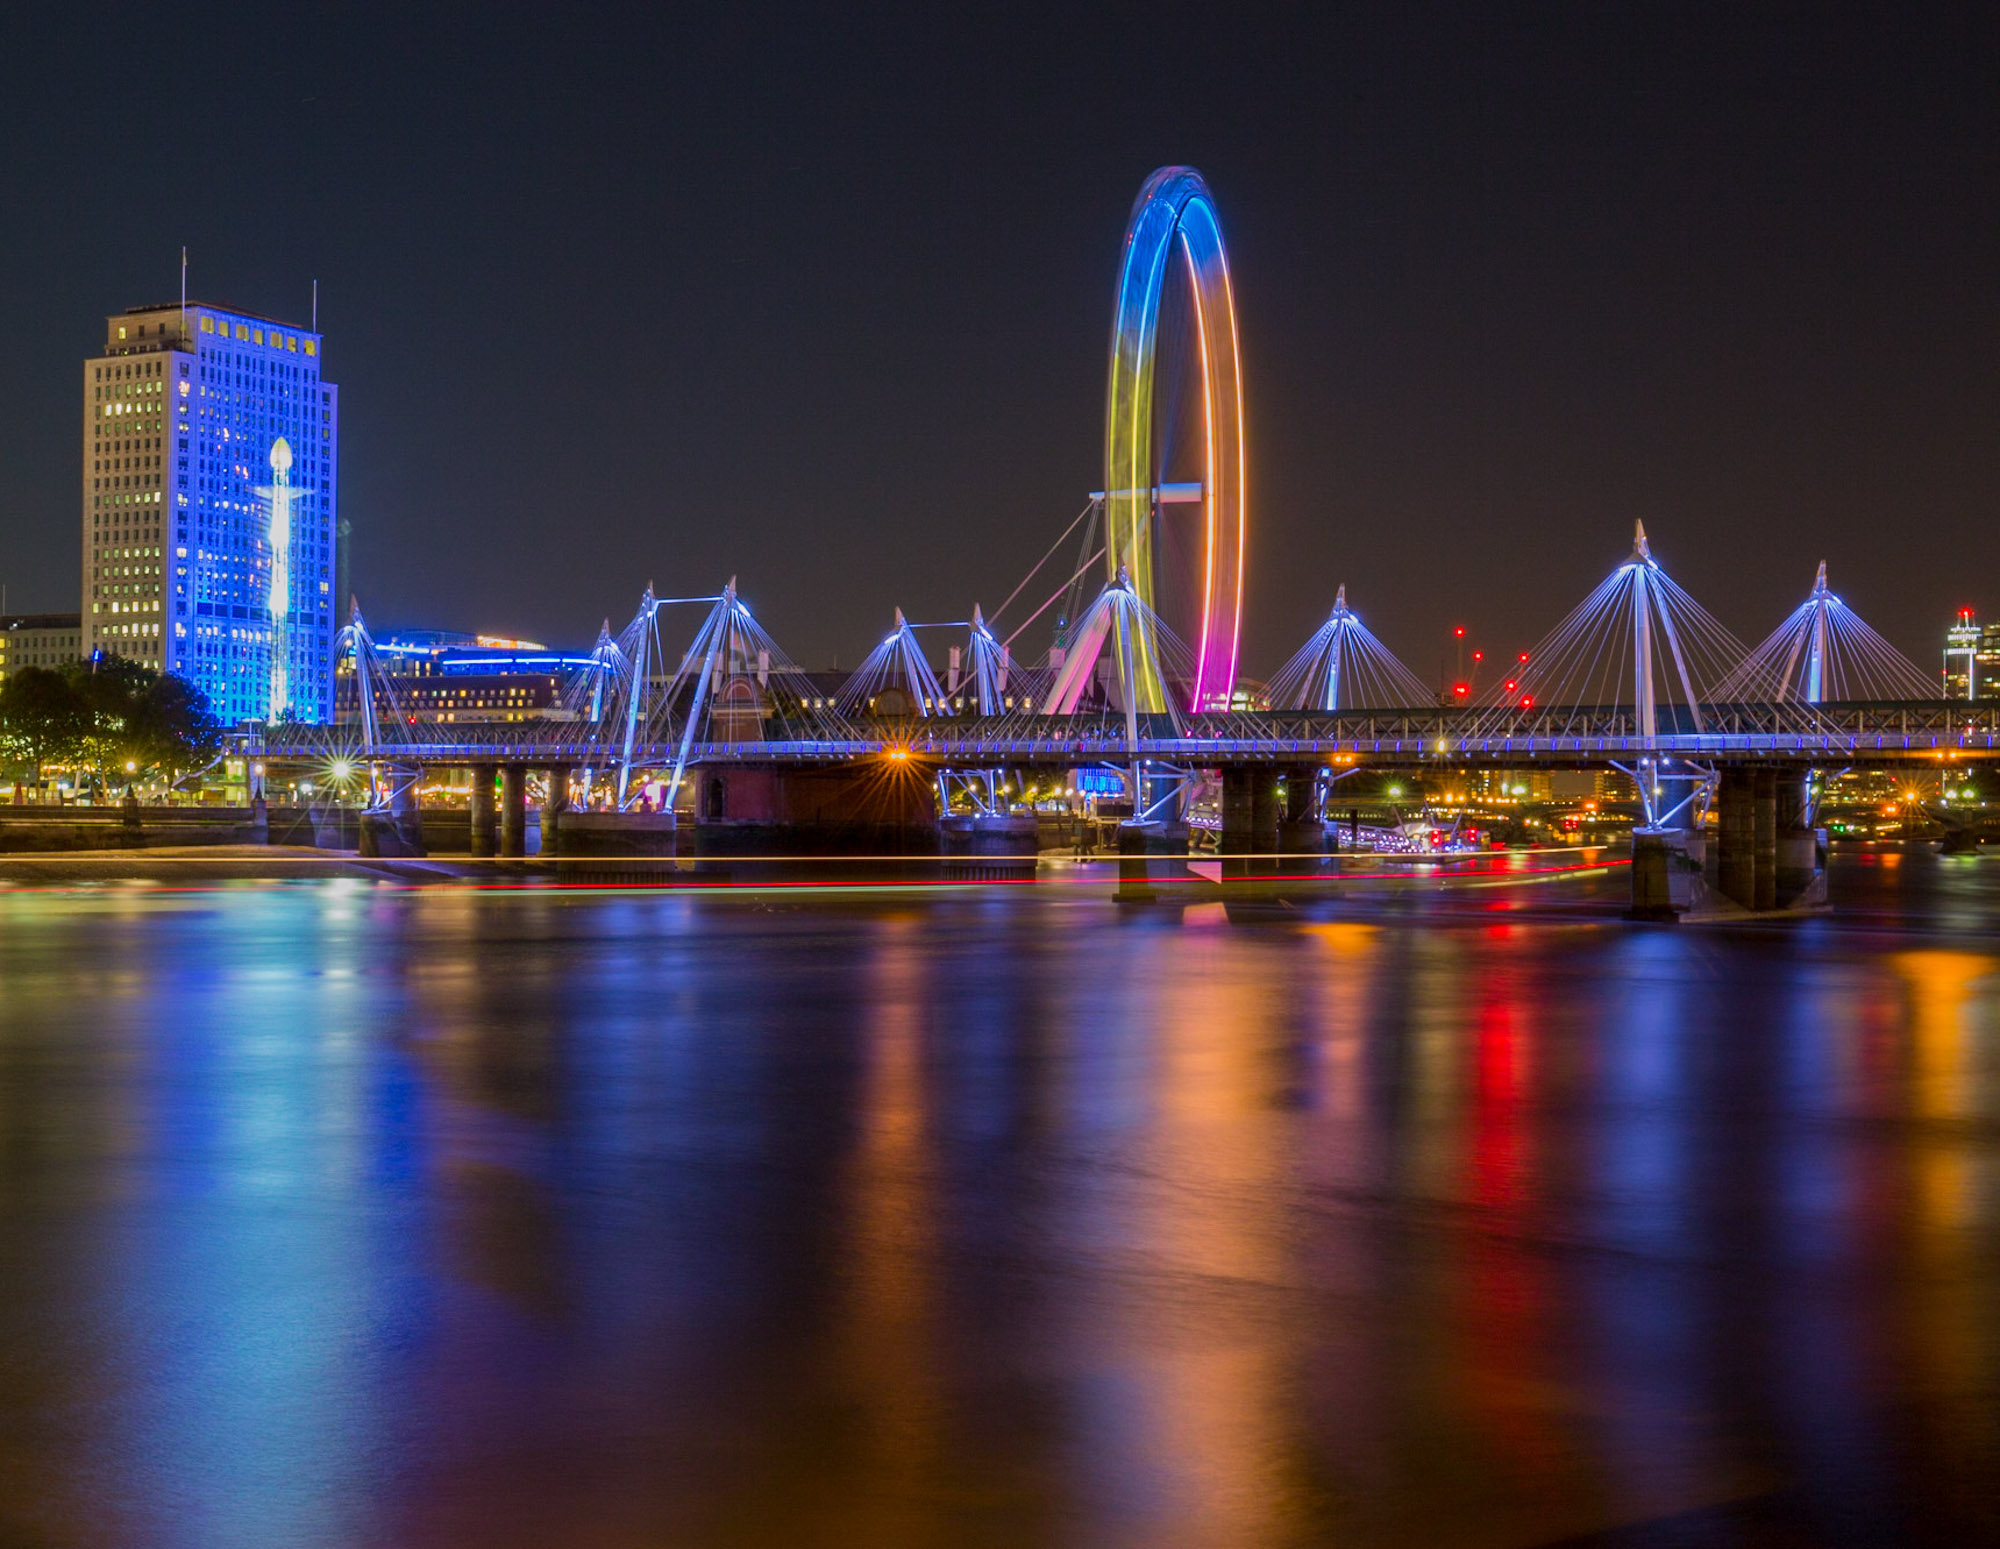 long exposure night photography of viewed down the River Thames of the London Eye and Hungerford Bridge in lights